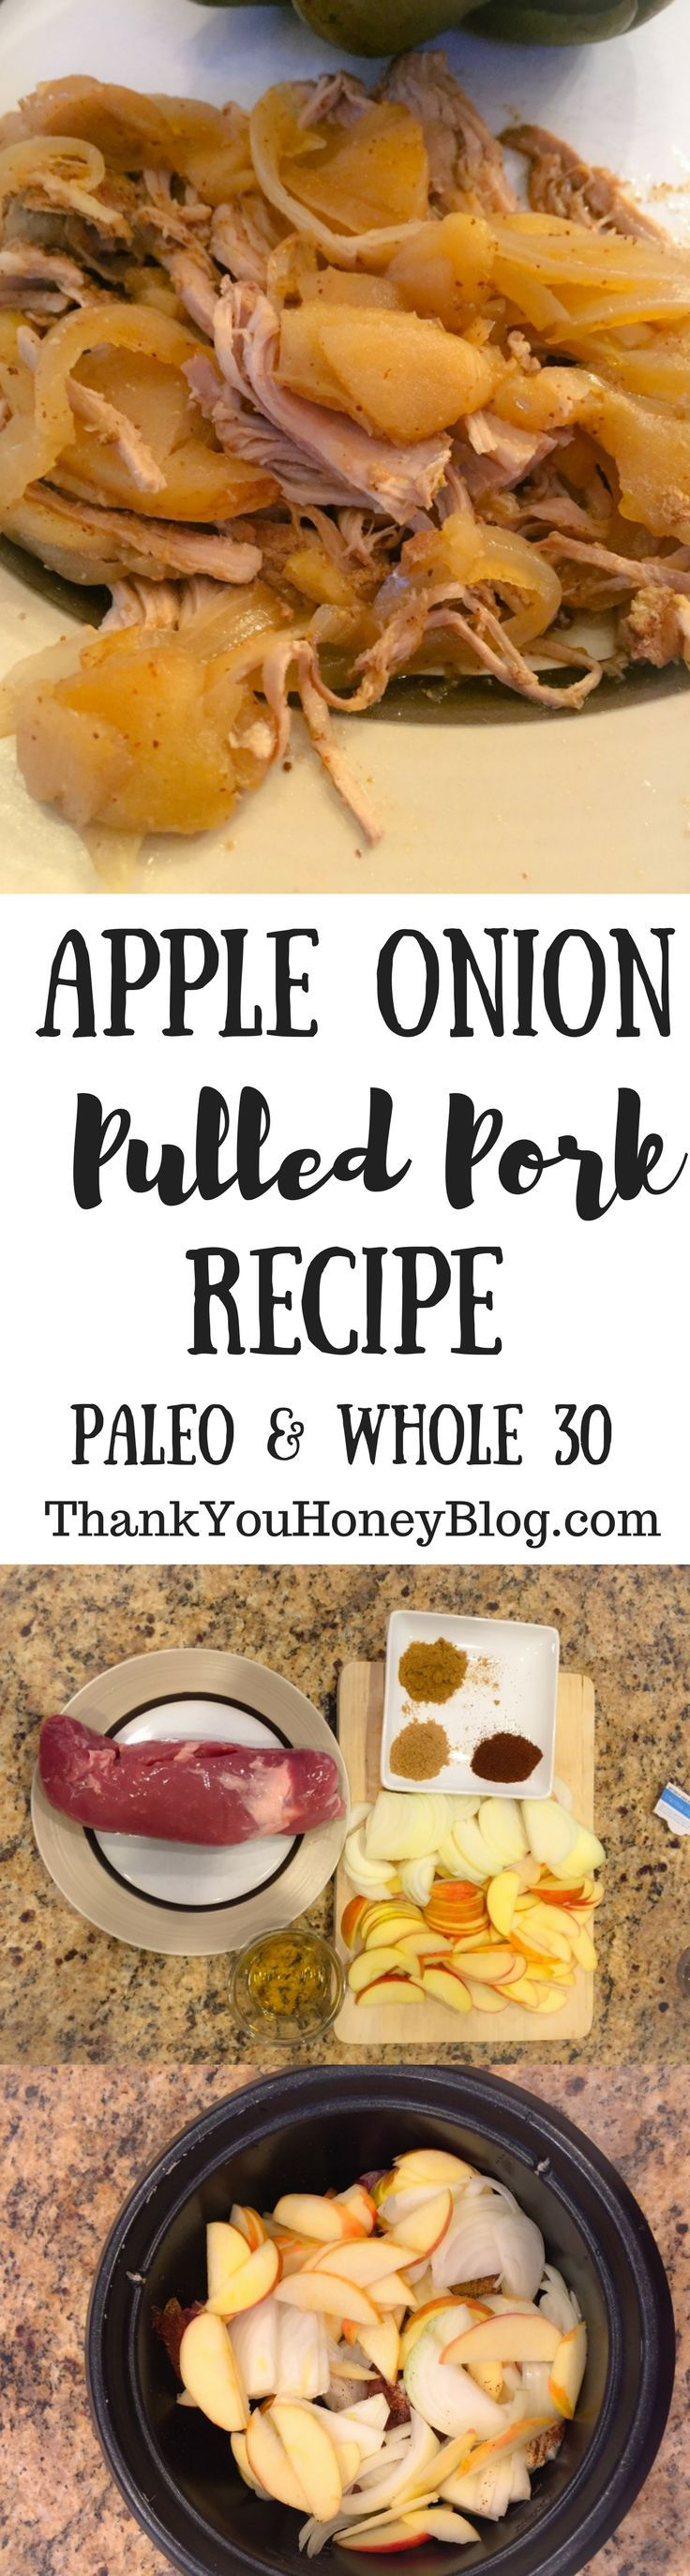 This is a simple slow cooker/ crockpot main dish, Apple Onion Pulled Pork Recipe. This recipe is Paleo, Whole 30, Gluten Free, Dairy Free and perfect for Fall. Click through & PIN IT to read later & Follow + Subscribe.